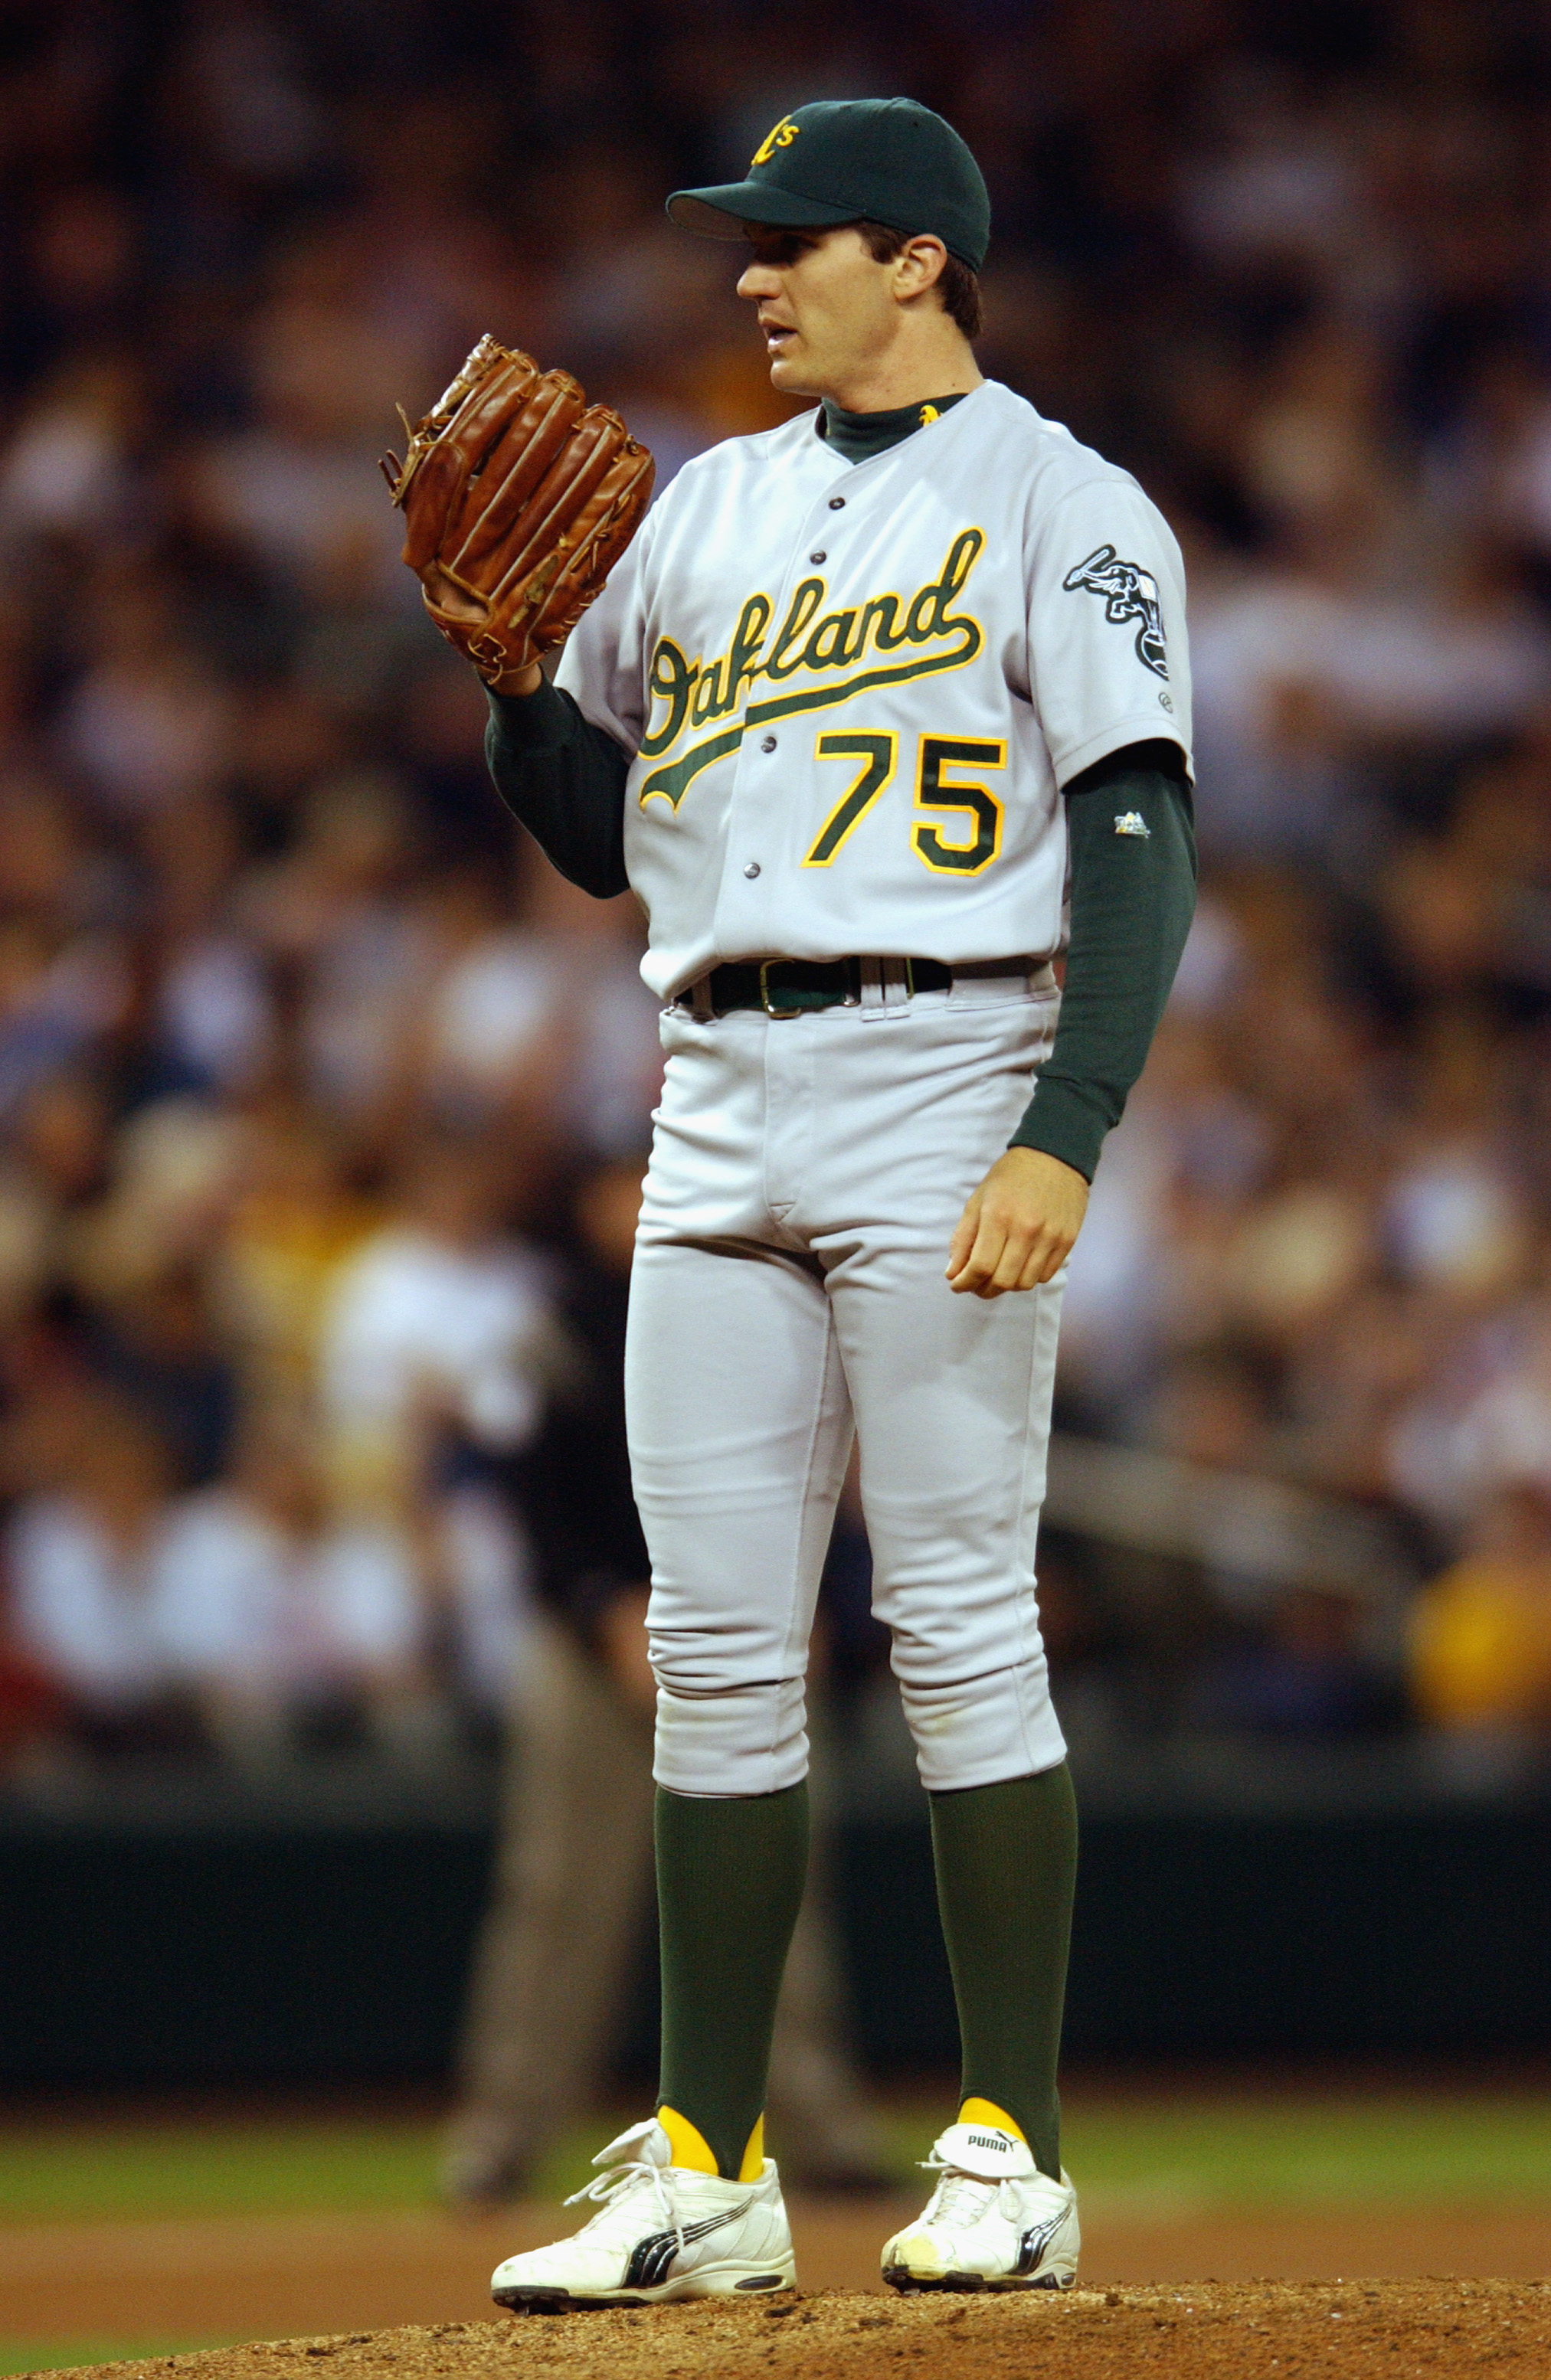 SEATTLE - SEPTEMBER 24:  Pitcher Barry Zito #75 of the Oakland Athletics looks in for the sign during the MLB game against the Seattle Mariners on September 24, 2002 at Safeco Field in Seattle, Washington. The Mariners won 8-7. (Photo by Otto Greule Jr/Ge